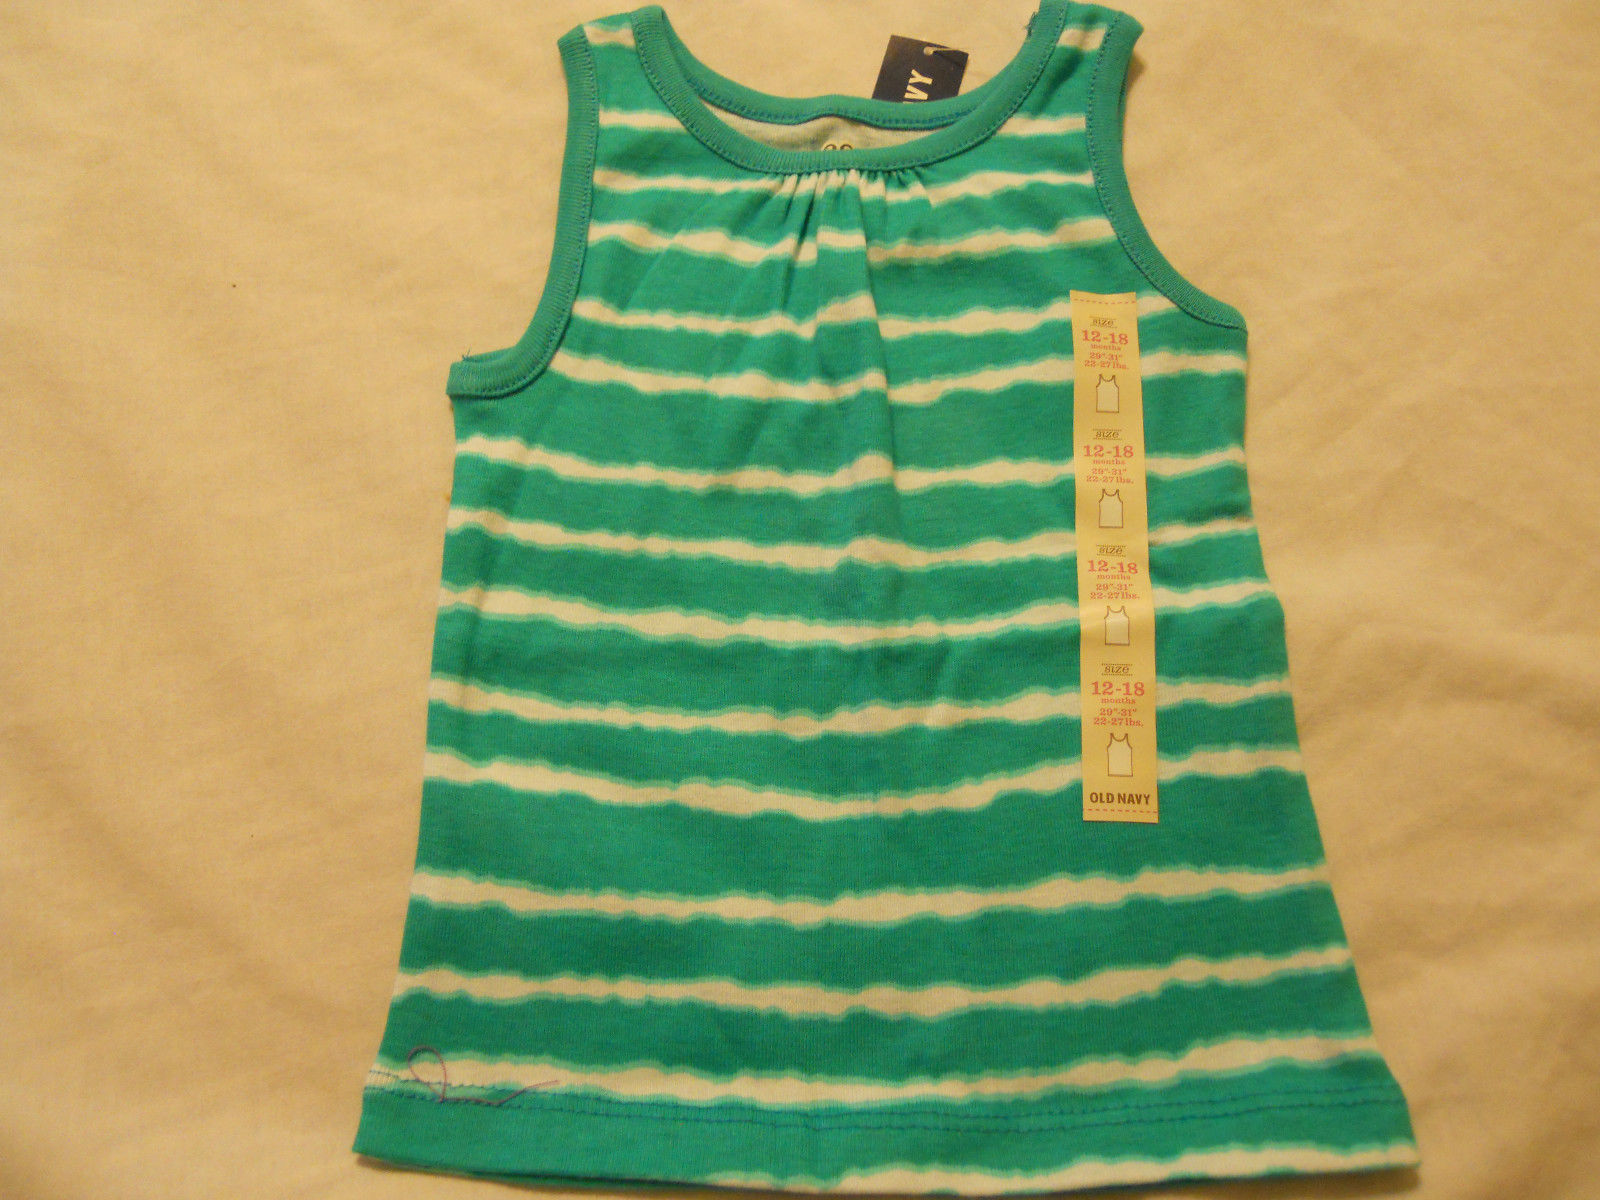 Old Navy Baby Girls Shirts Infants Toddlers Sleeveless Tank Top Solid Striped